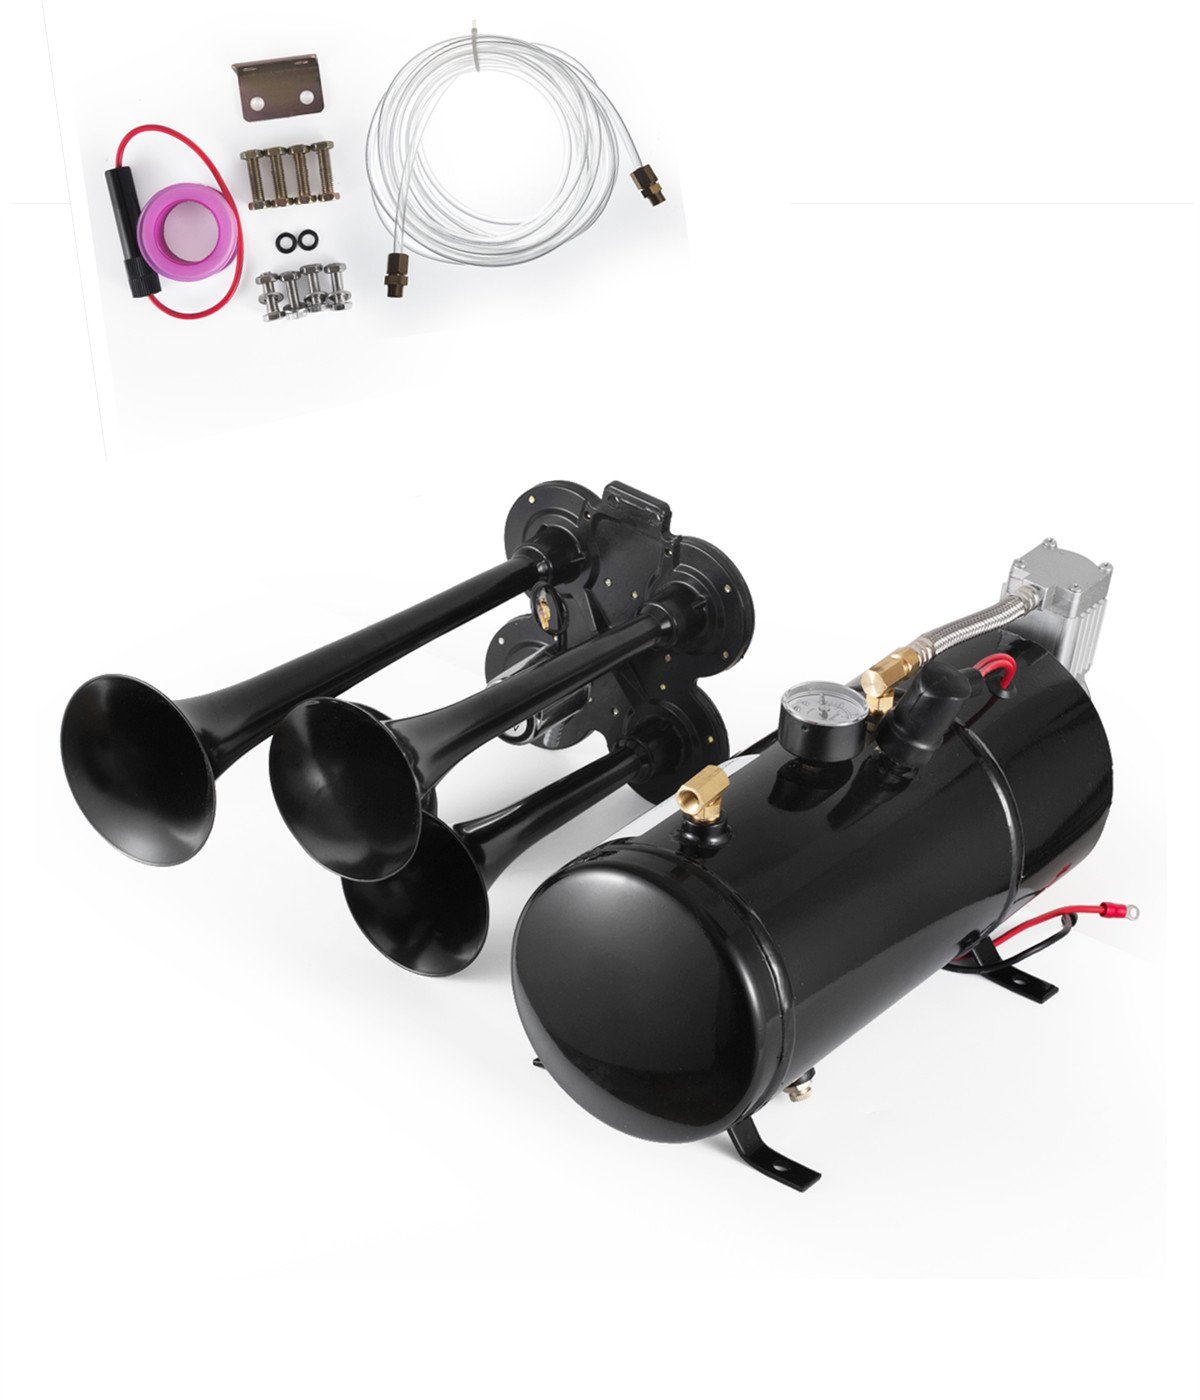 SHZOND Train Horn Kit 4 Trumpet Super Loud Air Horn Compressor Kit with 150 PSI Compressor and 0.8 Gallon Air Tank for Truck Boat or SUV (train horn kit)